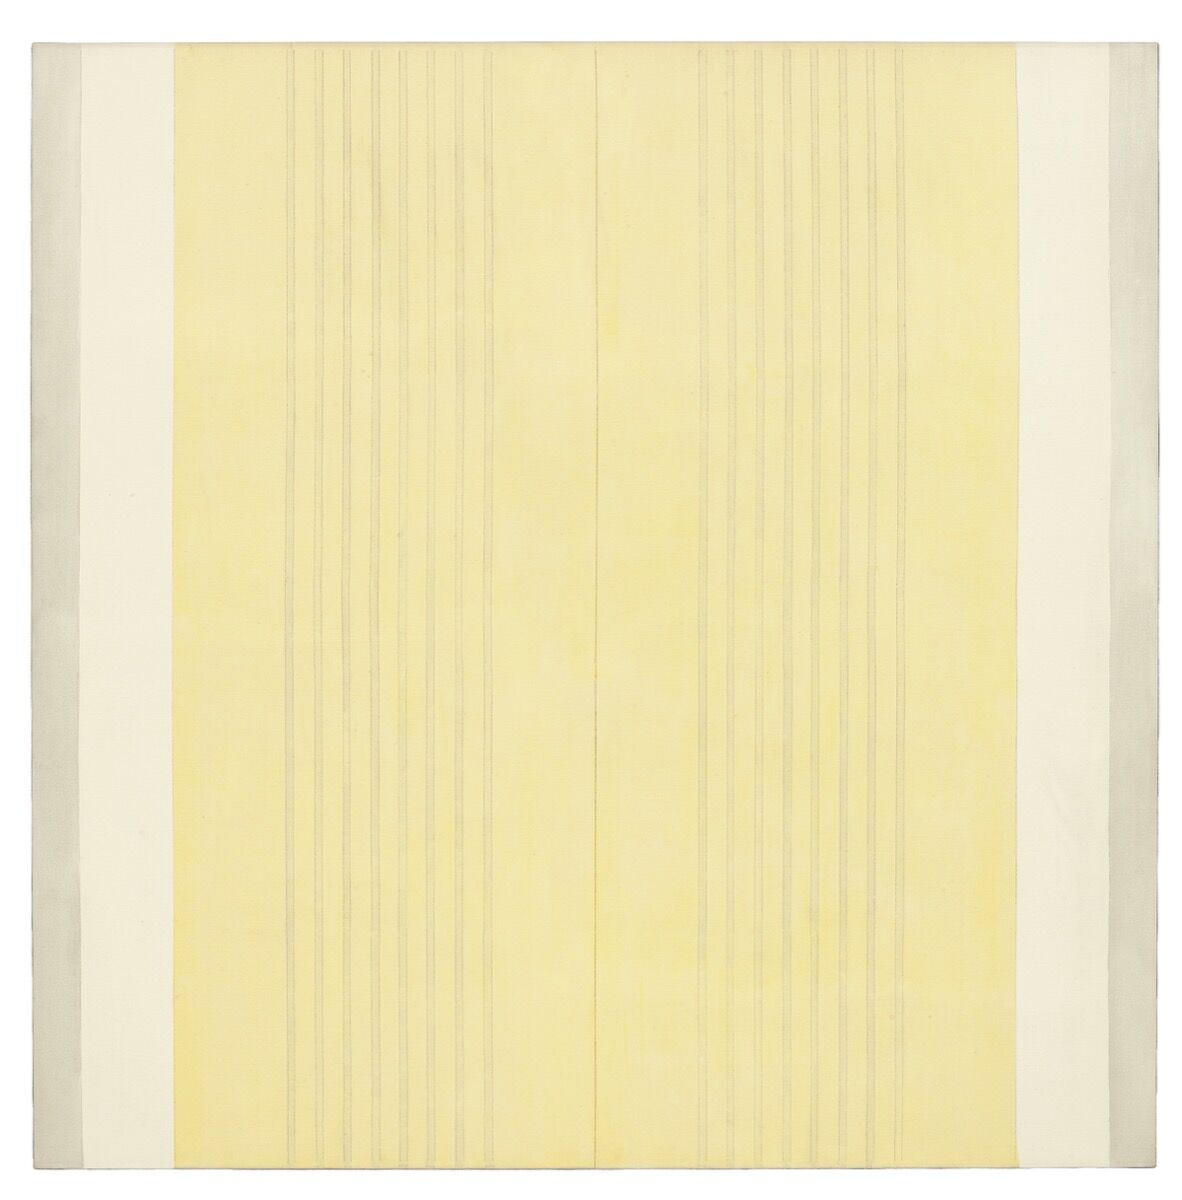 Agnes Martin, Untitled #5, 2002. © 2018 Estate of Agnes Martin / Artists Rights Society (ARS), New York. Courtesy of Pace.